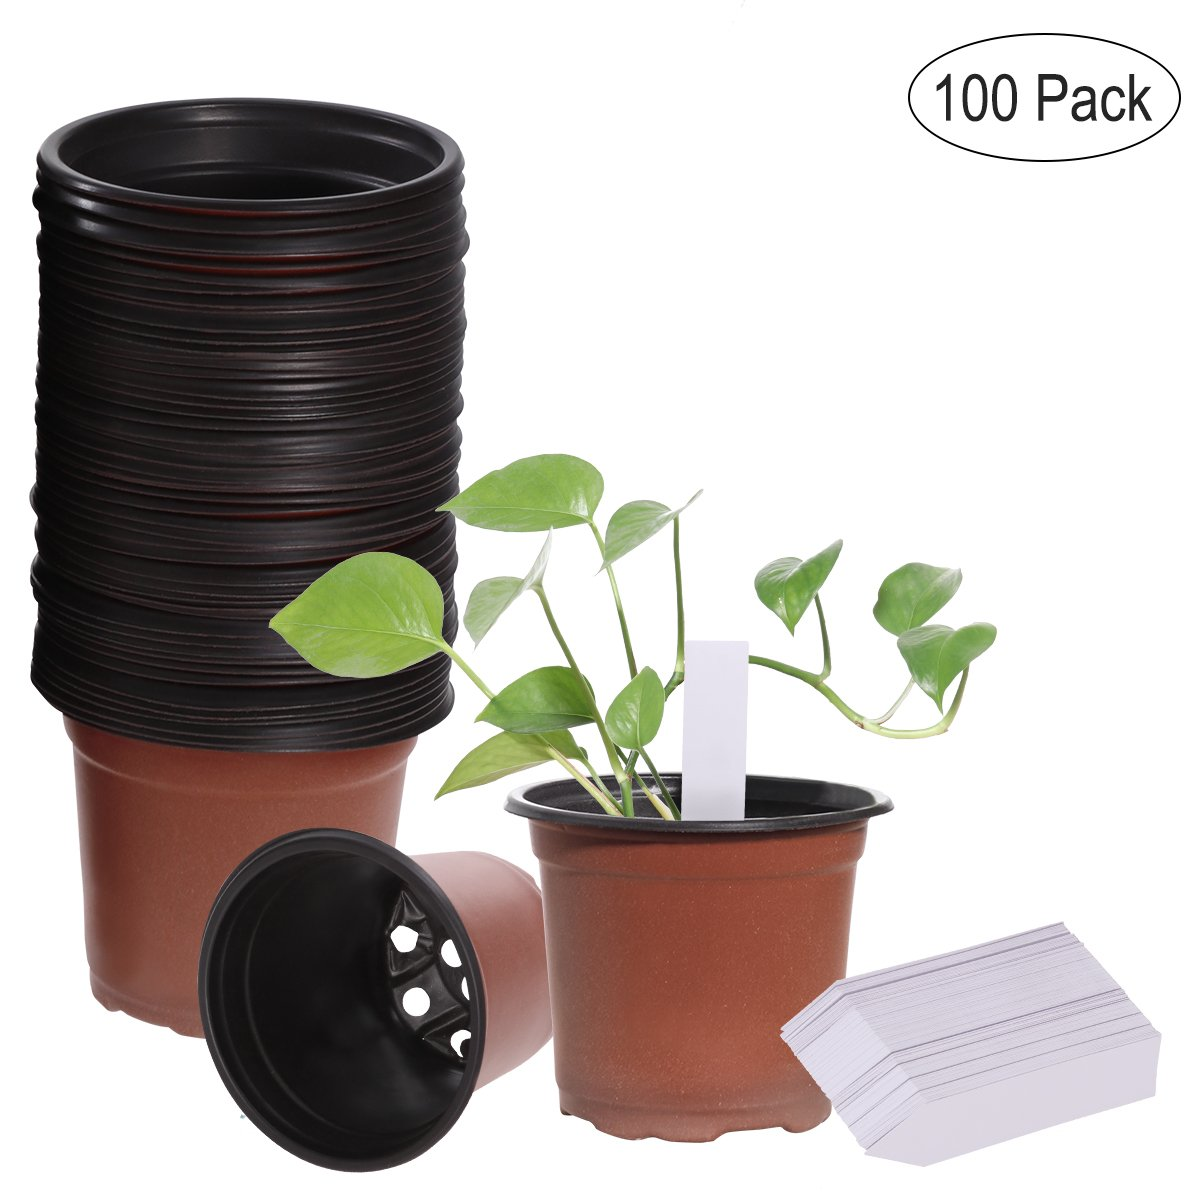 OUNONA 100PCS Flower Pots Lightweight Plastic Plant Containers Nursery Seedlings Pot Container Seed Starting Pots and 100PCS Plants Tags